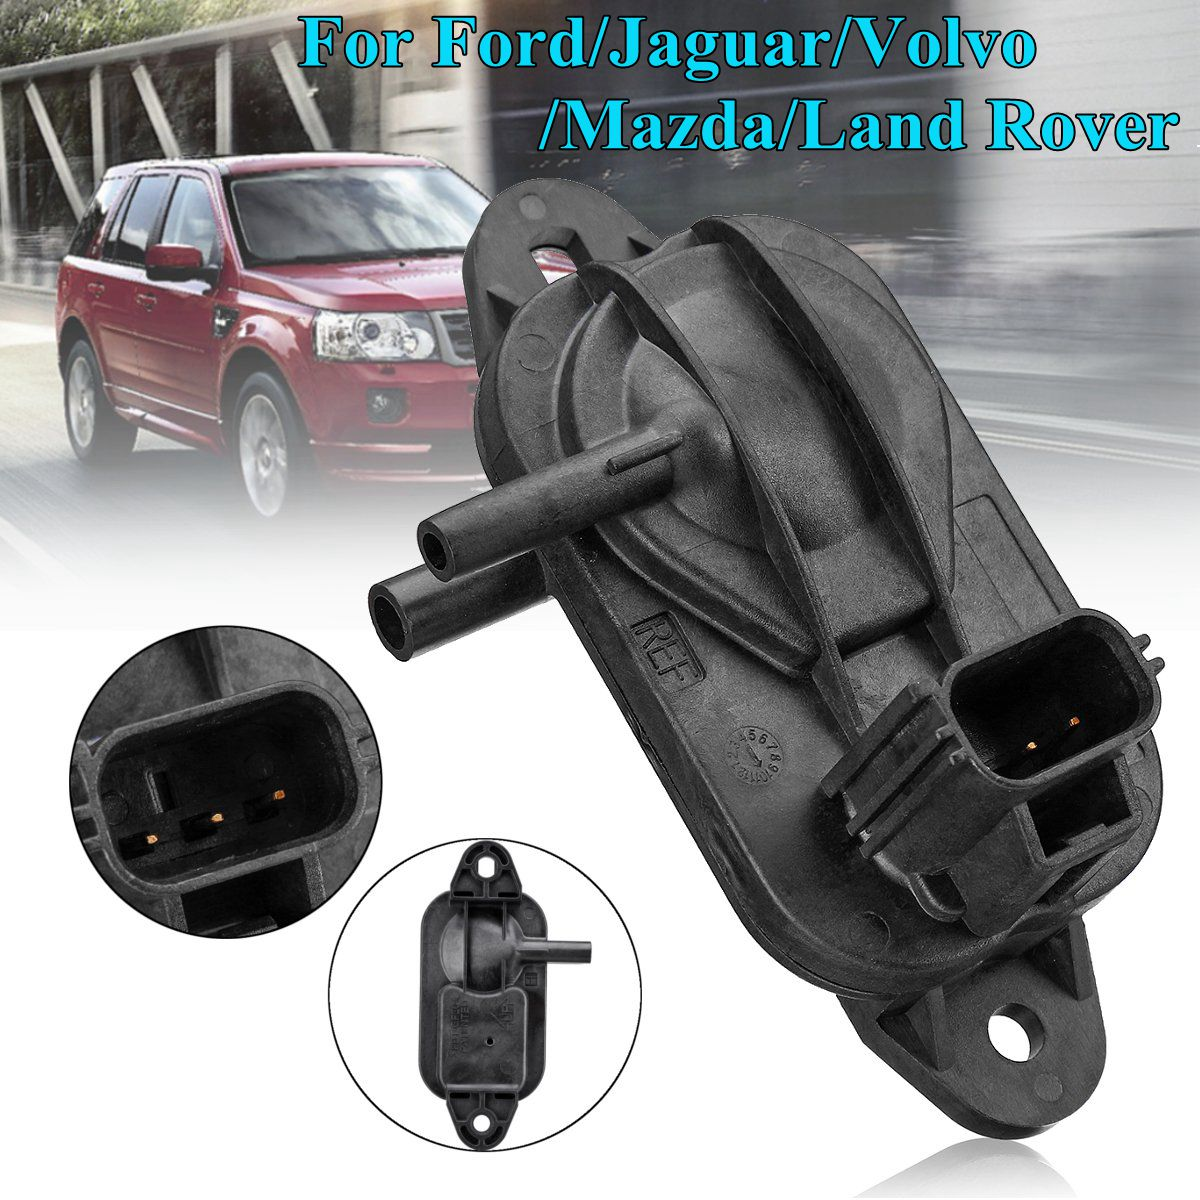 3 Pin for Ford Kuga for Volvo for Mazda for Land Rover 3M5A5L200AB Exhaust Gas Pressure Sensor DPF Senor 14156063 Pin for Ford Kuga for Volvo for Mazda for Land Rover 3M5A5L200AB Exhaust Gas Pressure Sensor DPF Senor 1415606